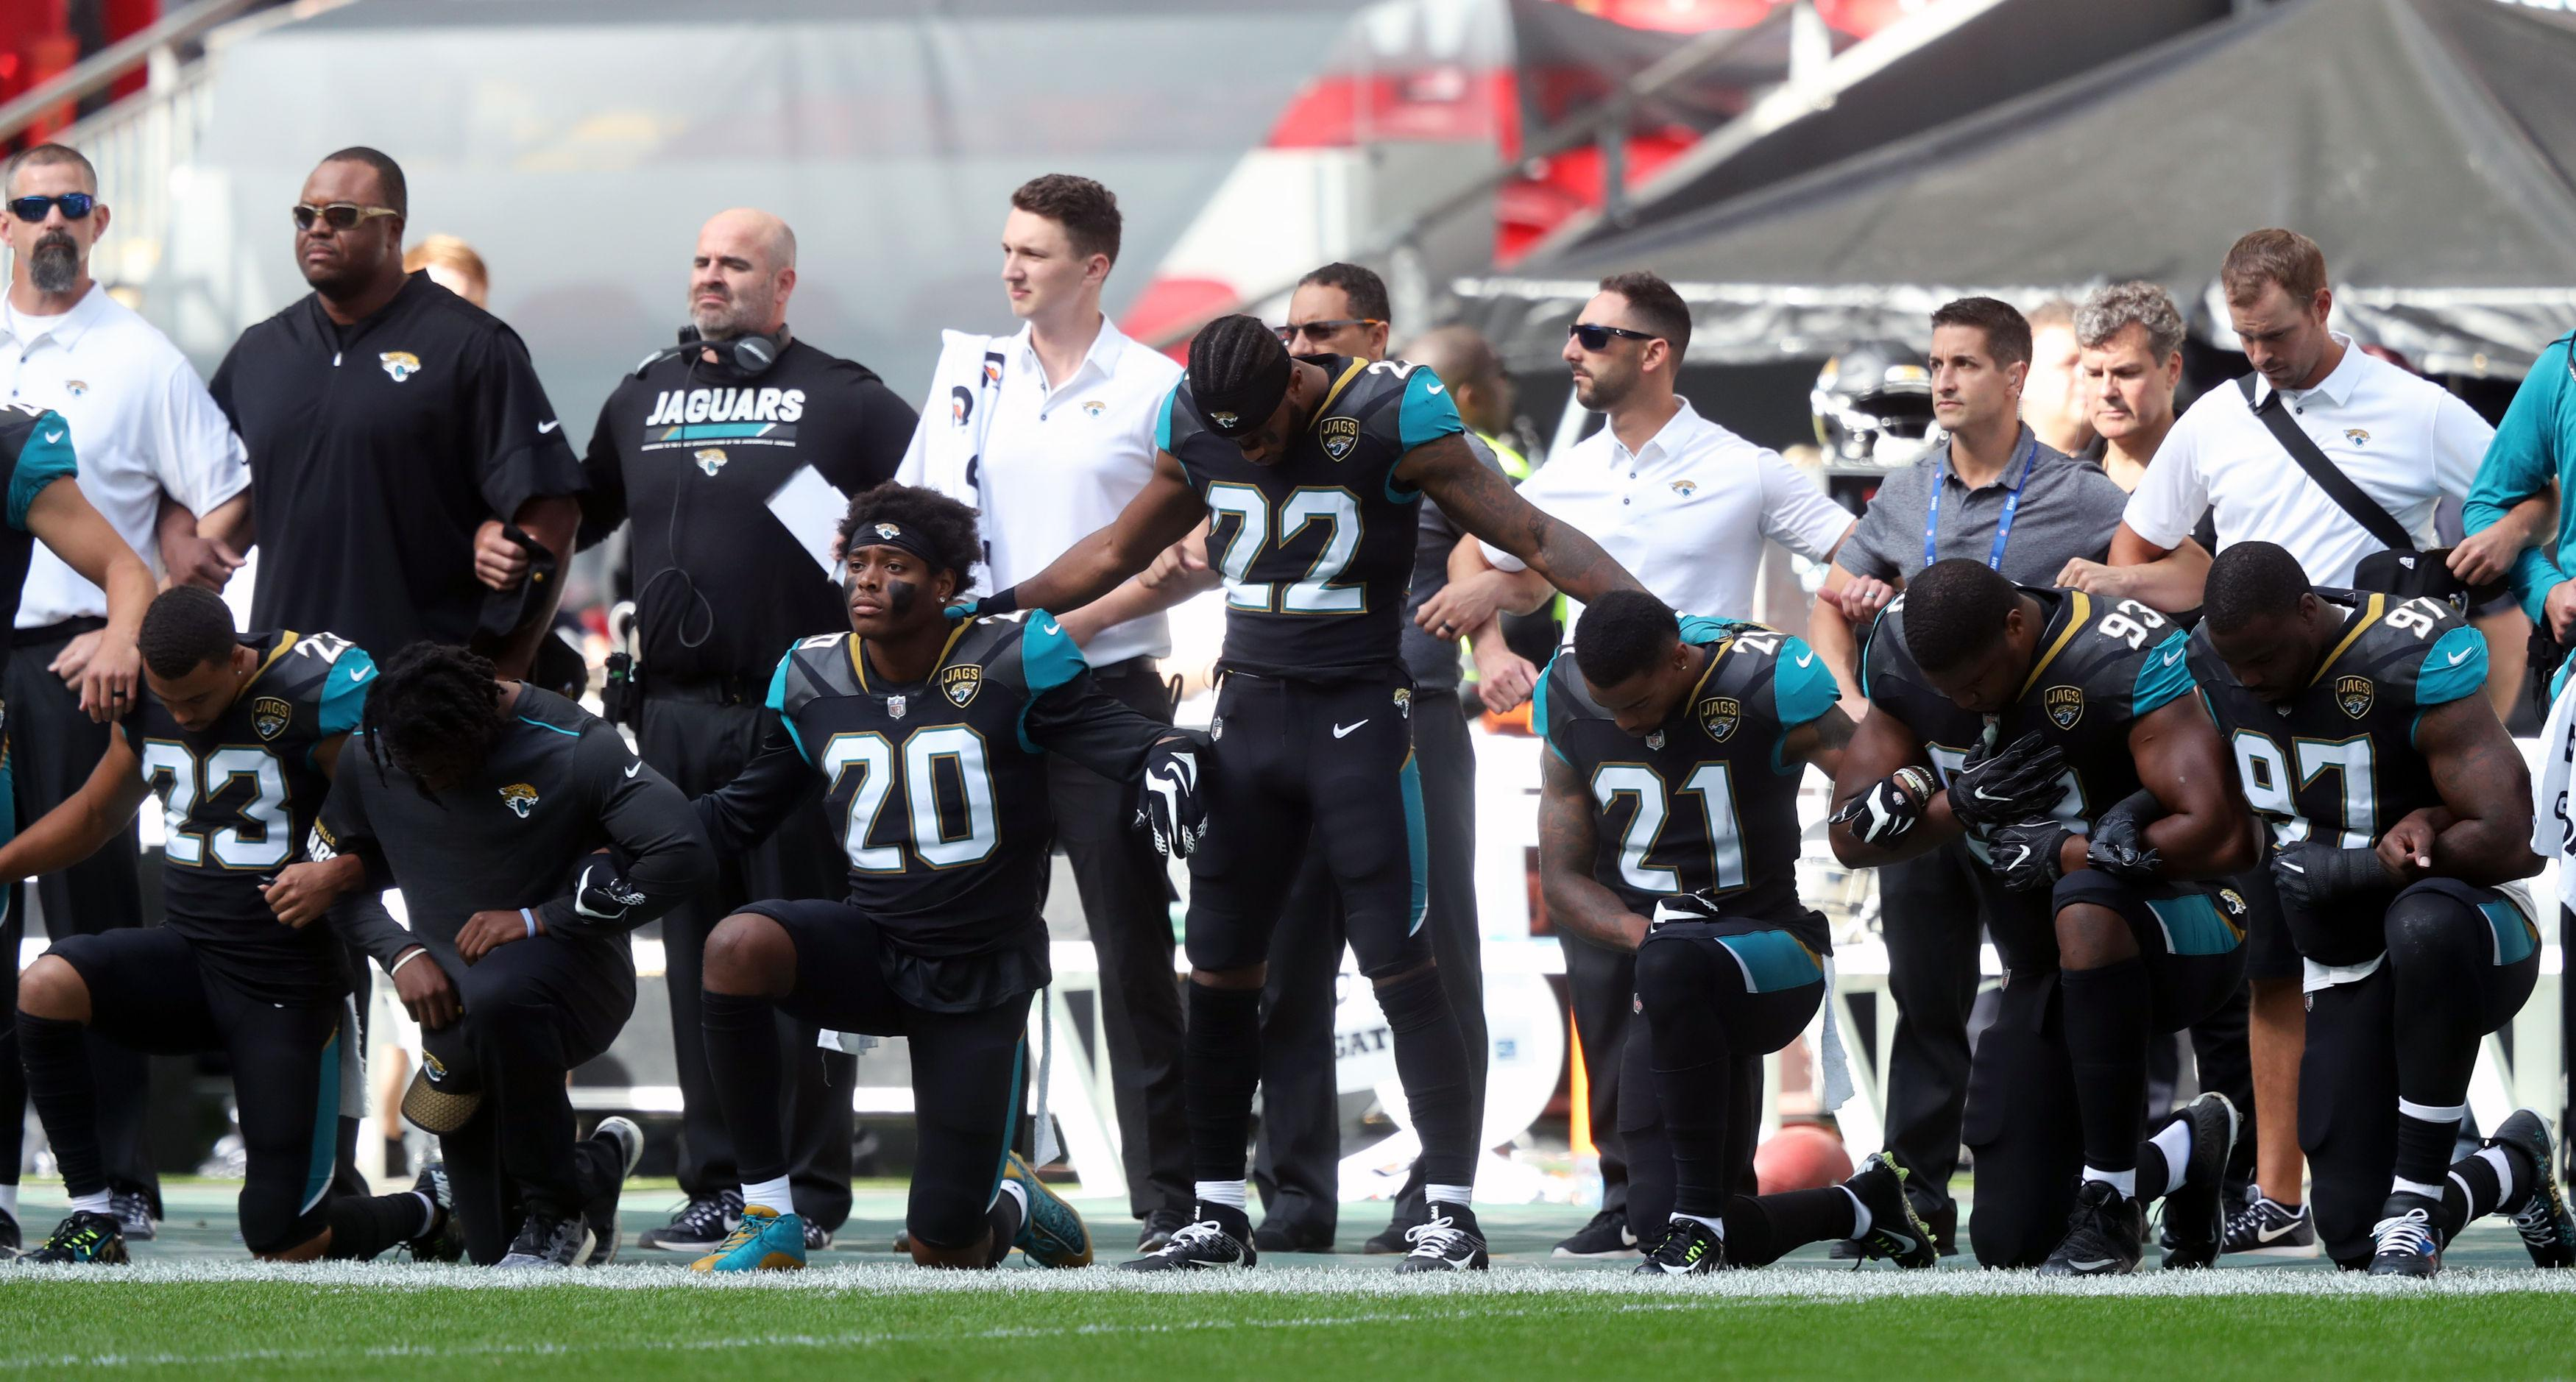 The kneeling protests are a hugely divisive issue Stateside